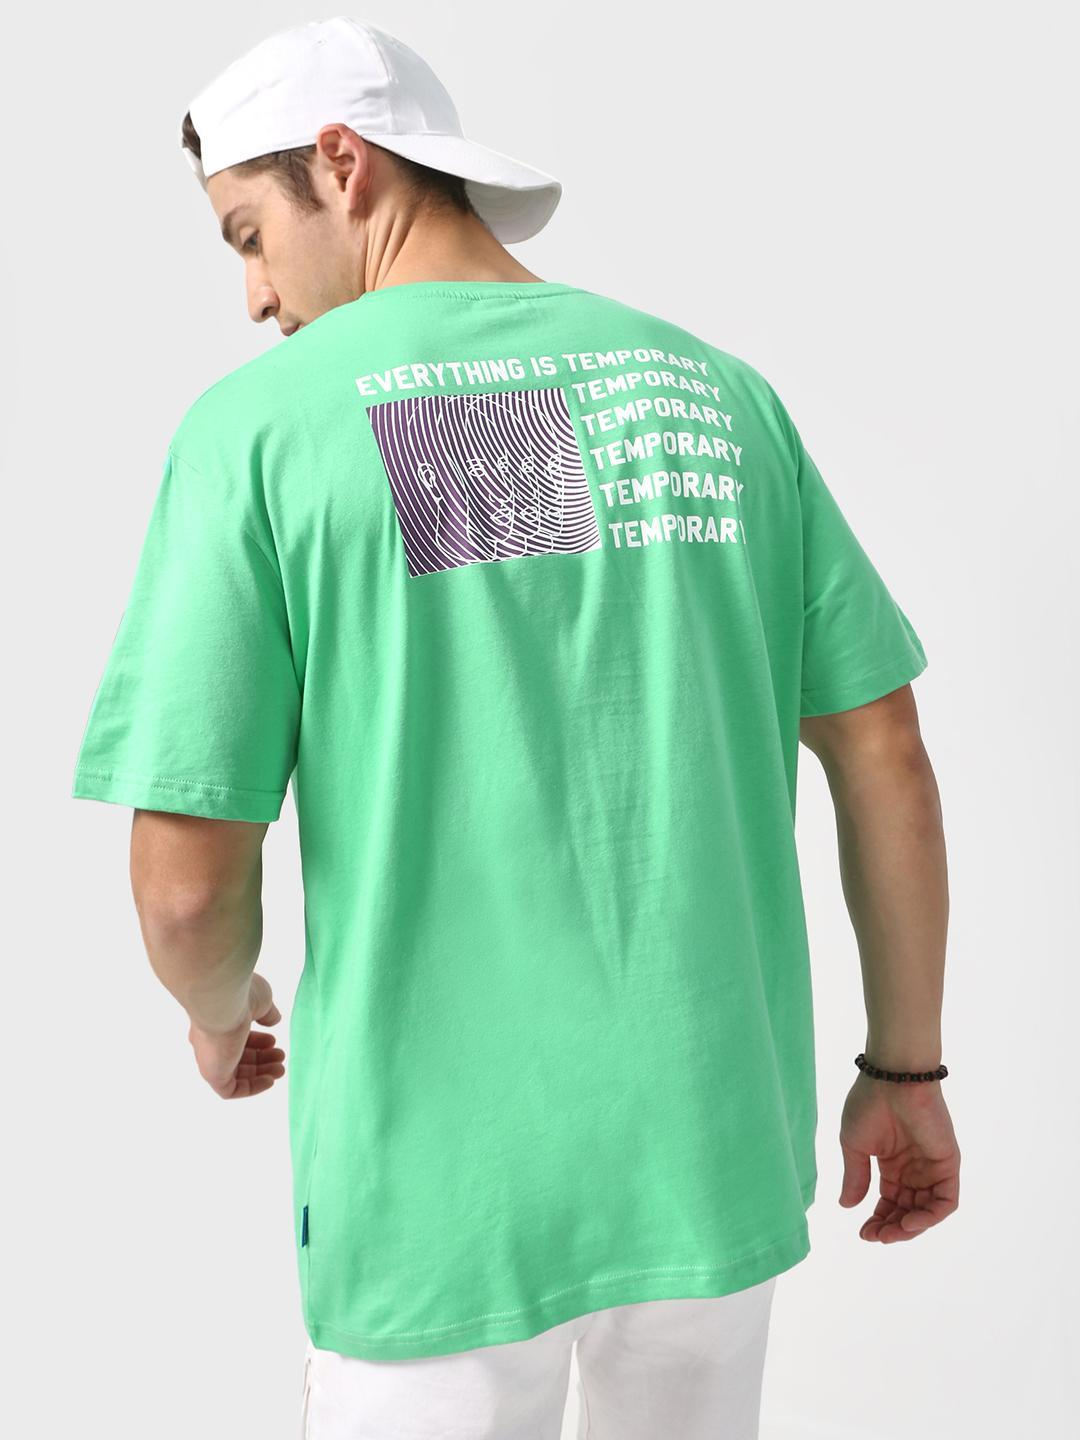 Blue Saint Green Back Abstract Slogan Print T-shirt 1